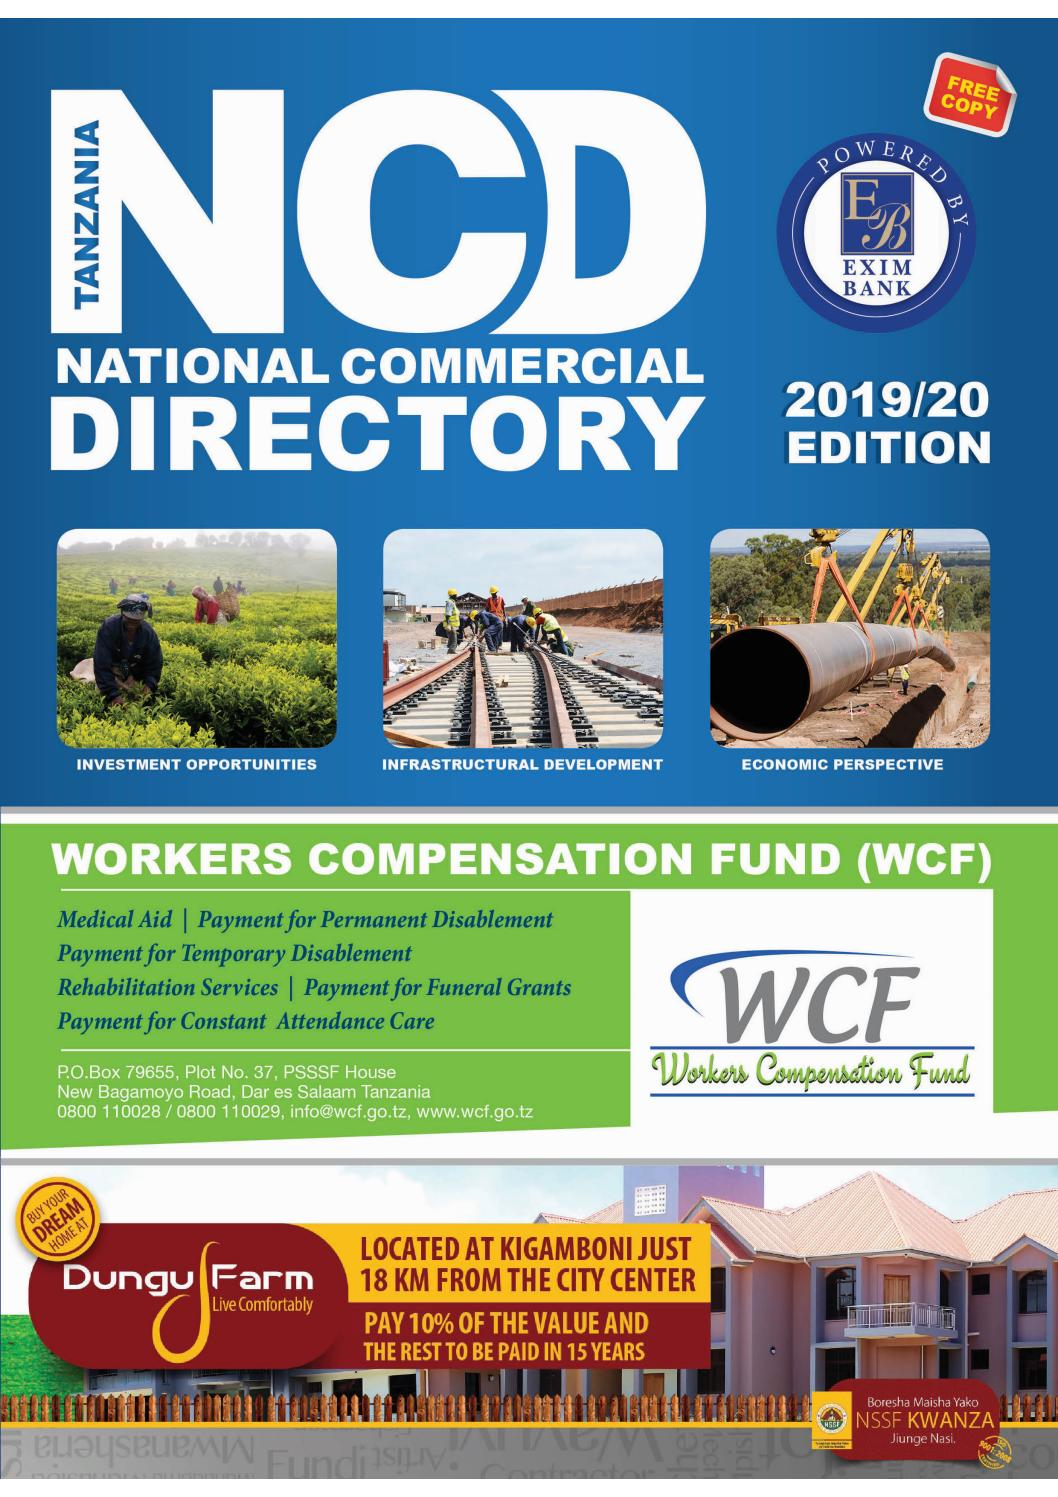 Tanzania National Commercial Directory Issue 002 - 2019